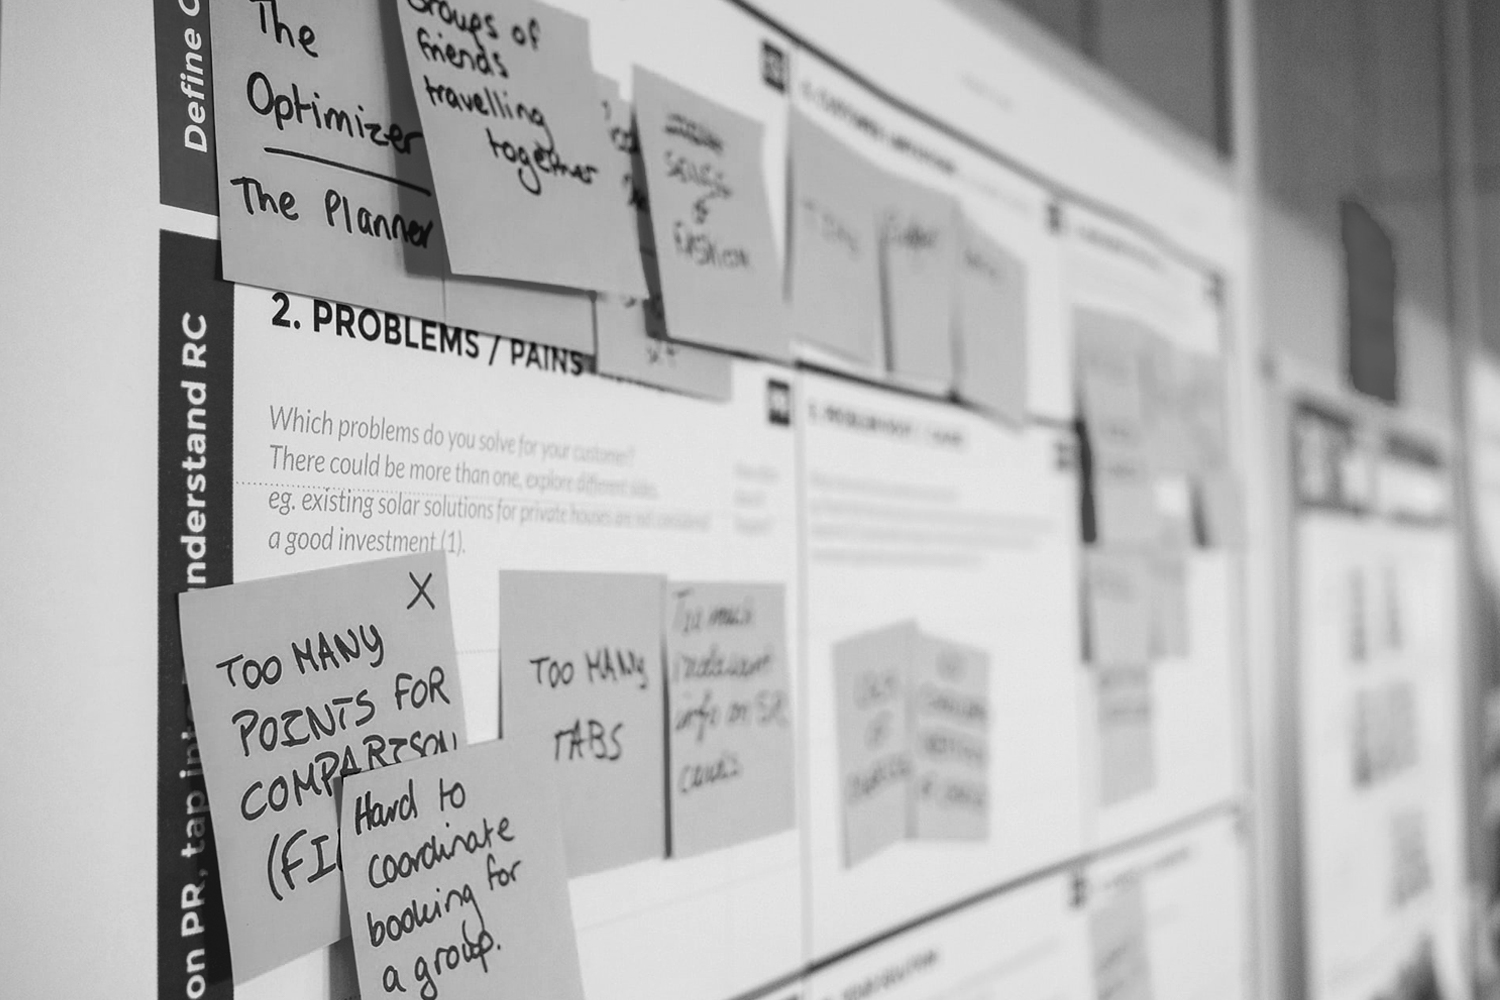 Product management techniques for a higher education national infrastructure project